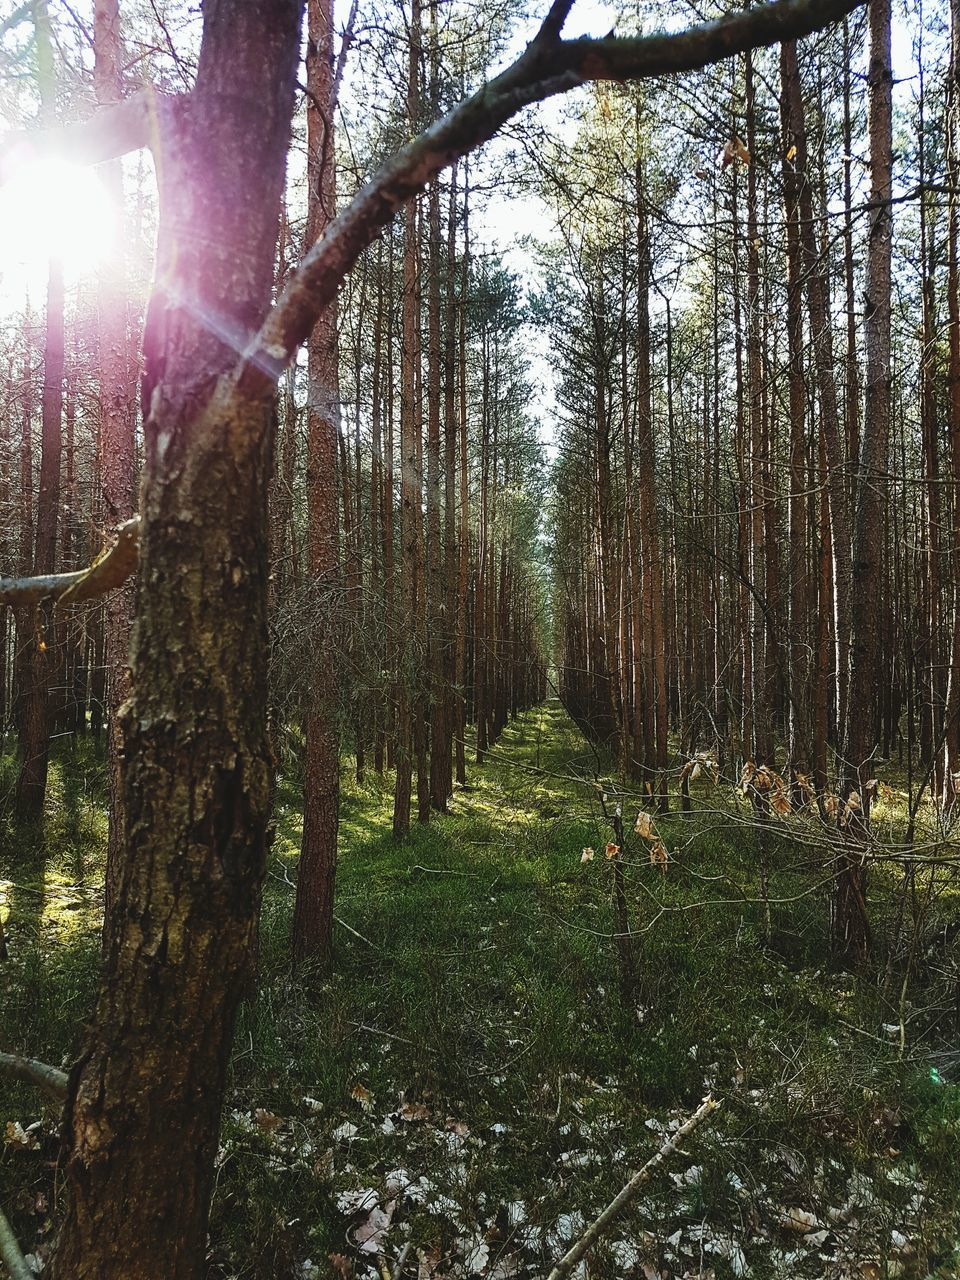 tree, tree trunk, forest, nature, growth, tranquility, sunlight, day, tranquil scene, sun, beauty in nature, outdoors, no people, scenics, grass, branch, sky